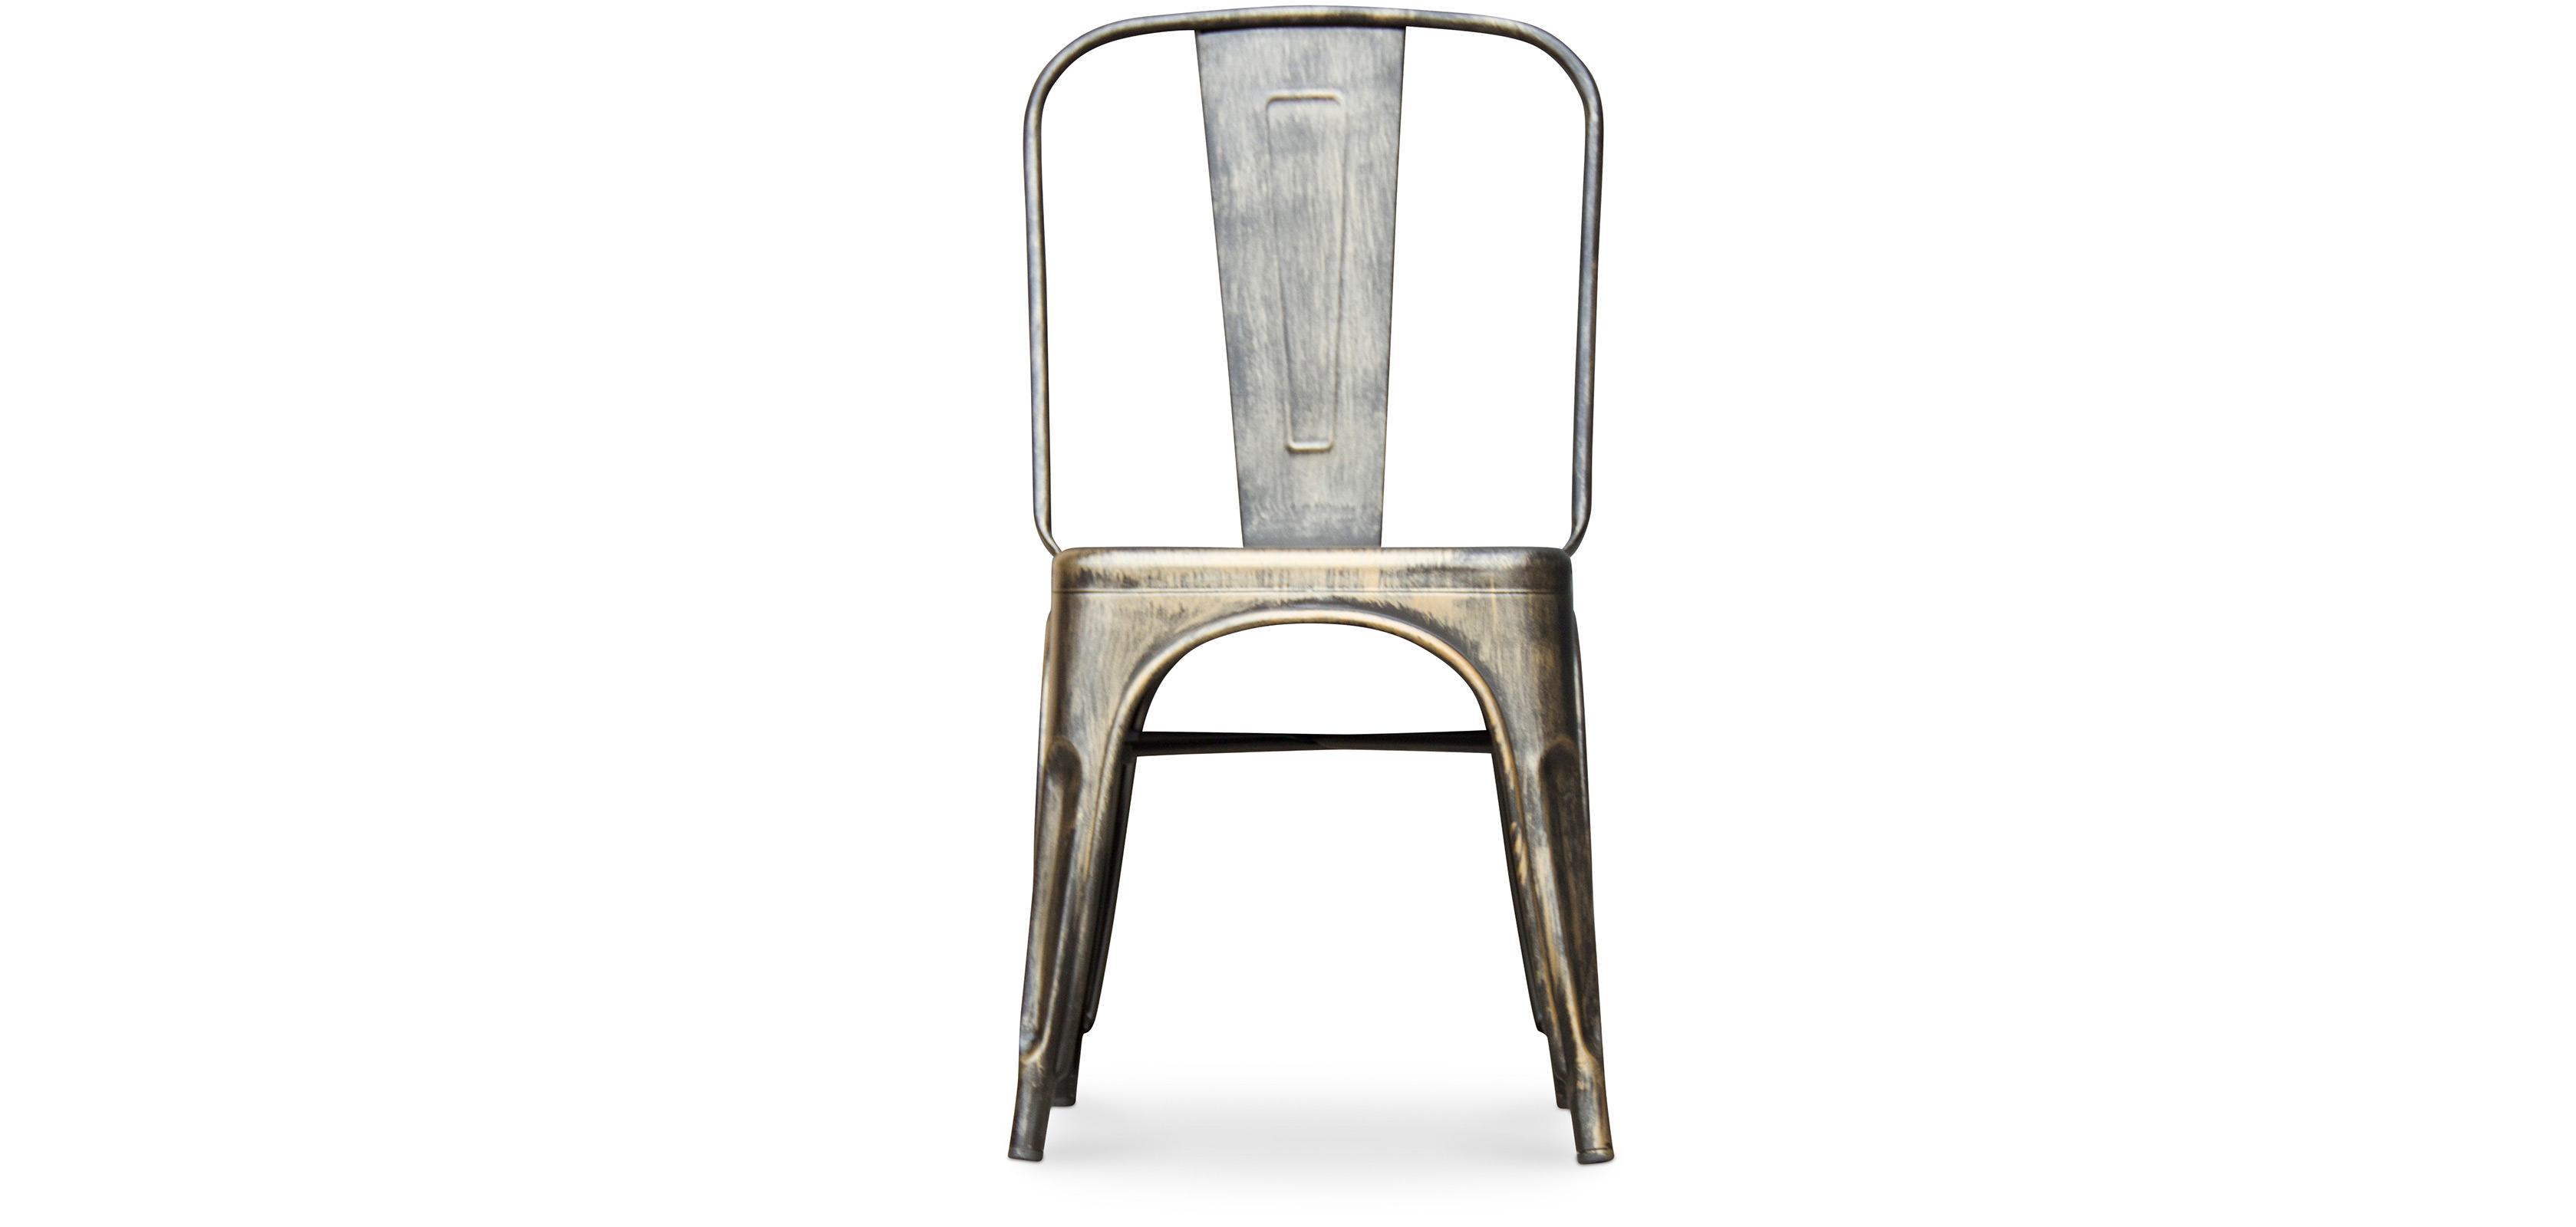 Tolix chair square seat xavier pauchard style metal Chaise imitation tolix